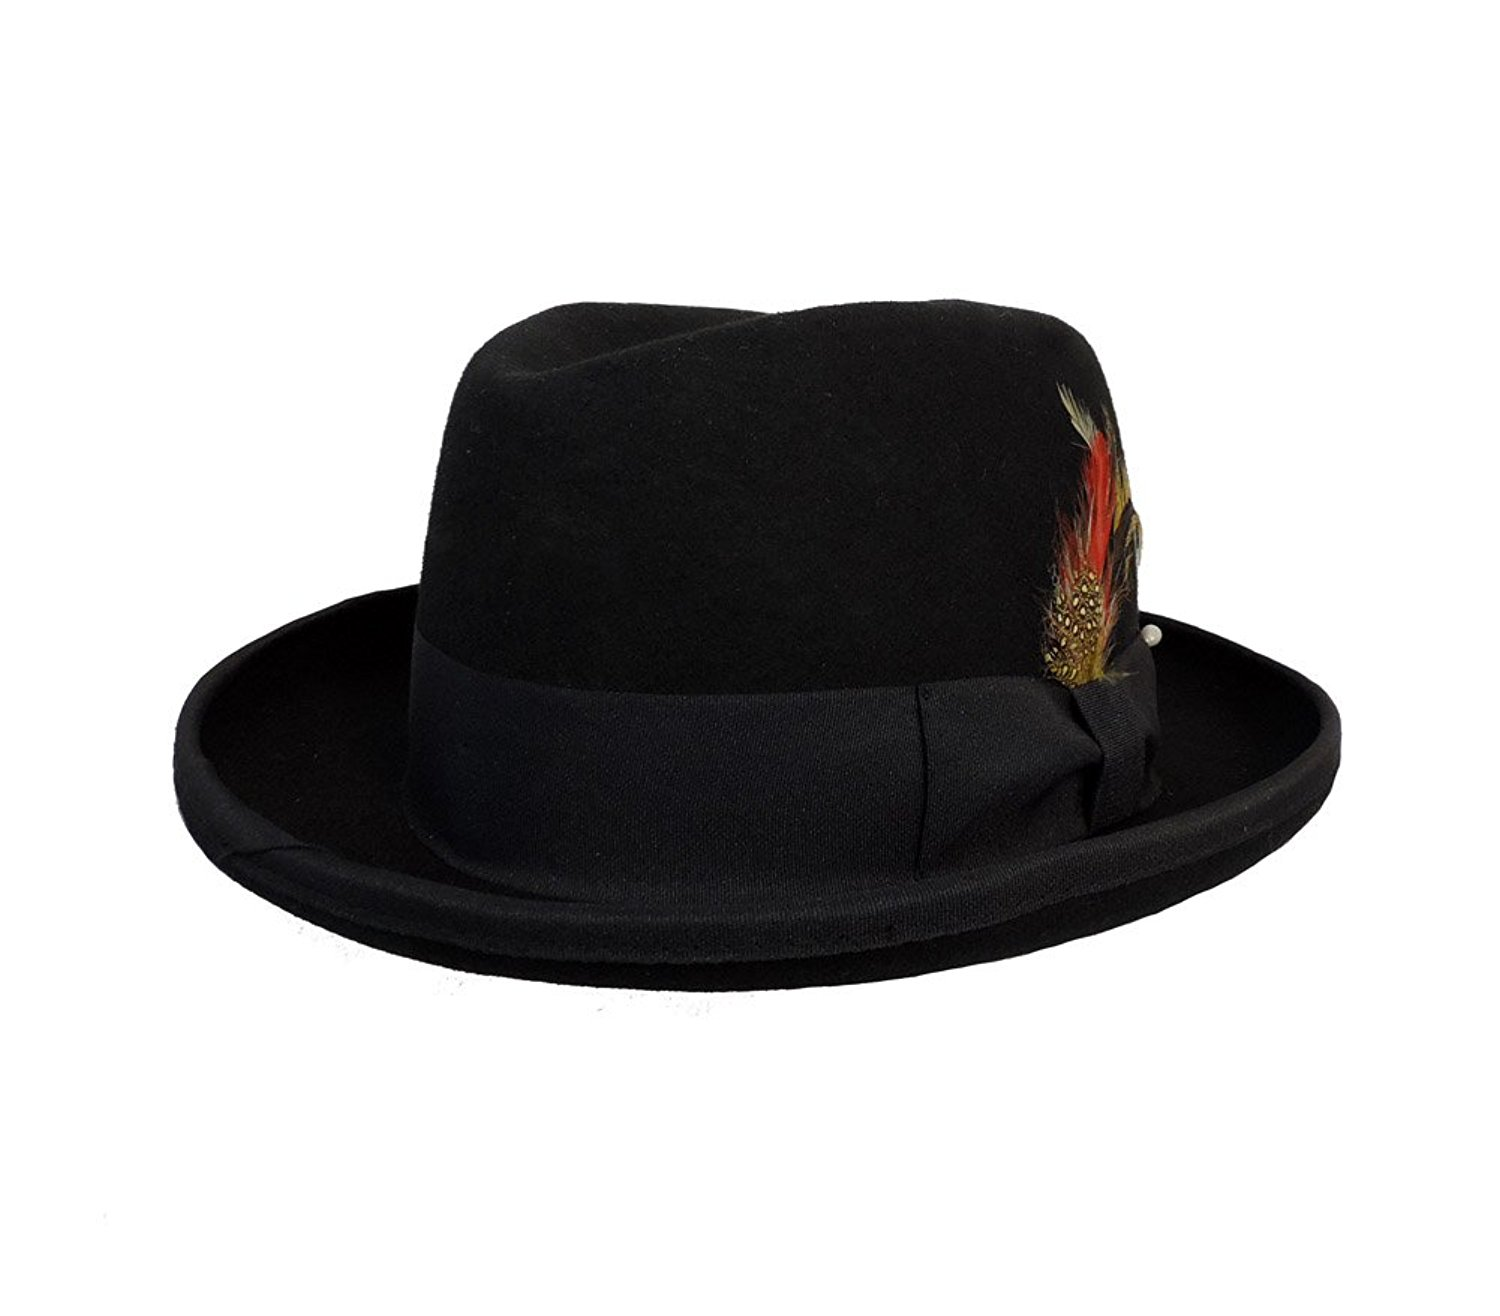 9c76b7429b0 Get Quotations · Men s Wool Felt Godfather Fedora Hat Black